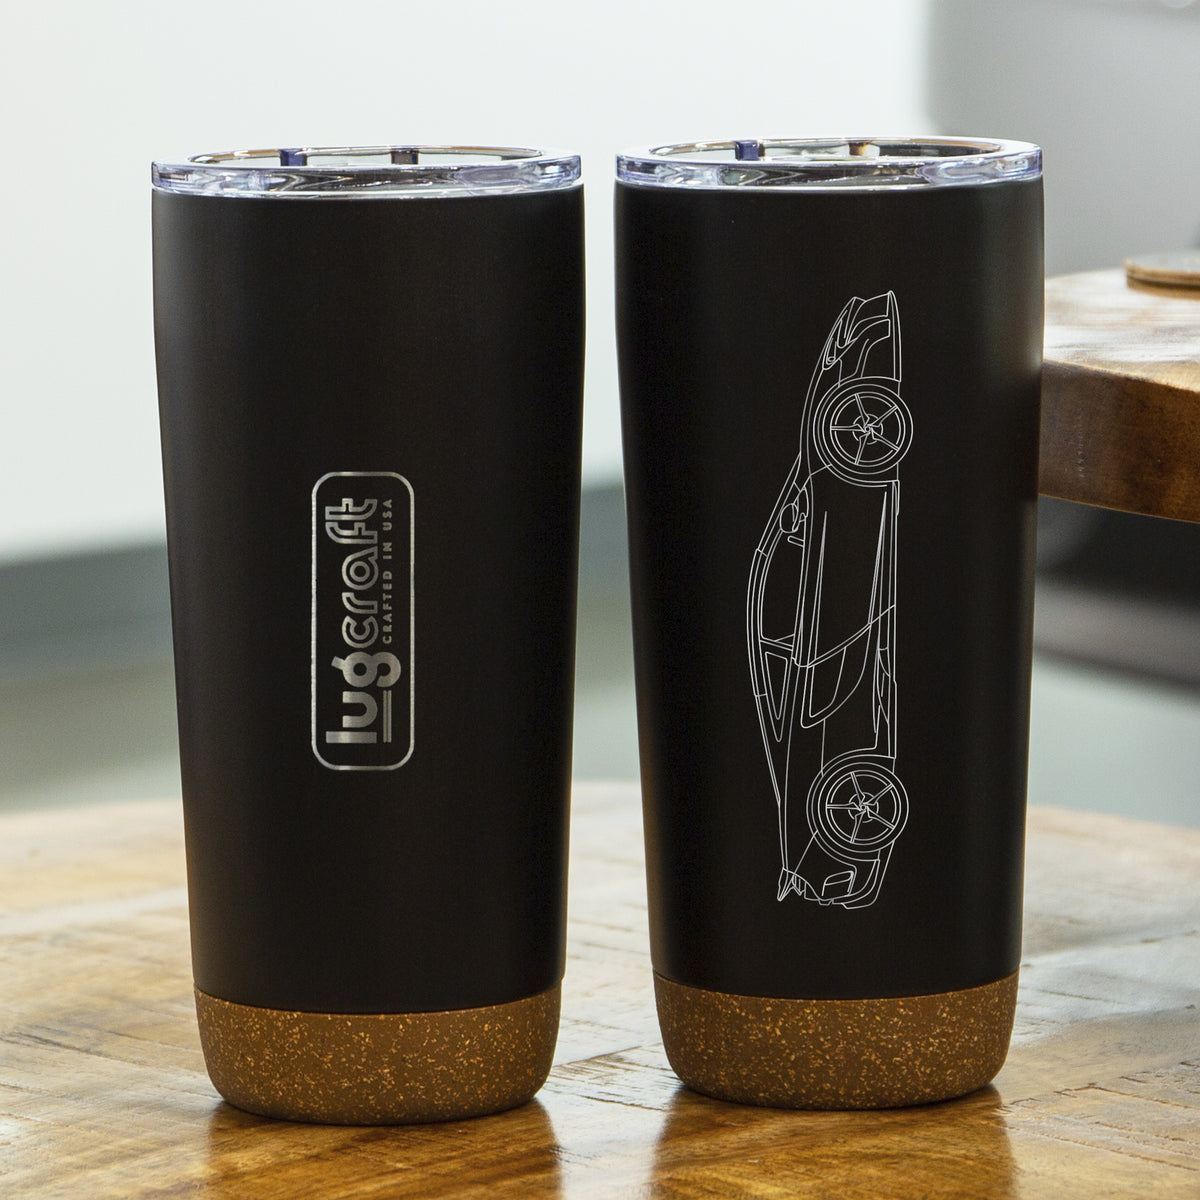 McLaren 675LT Insulated Stainless Steel Coffee Tumbler - 20 oz